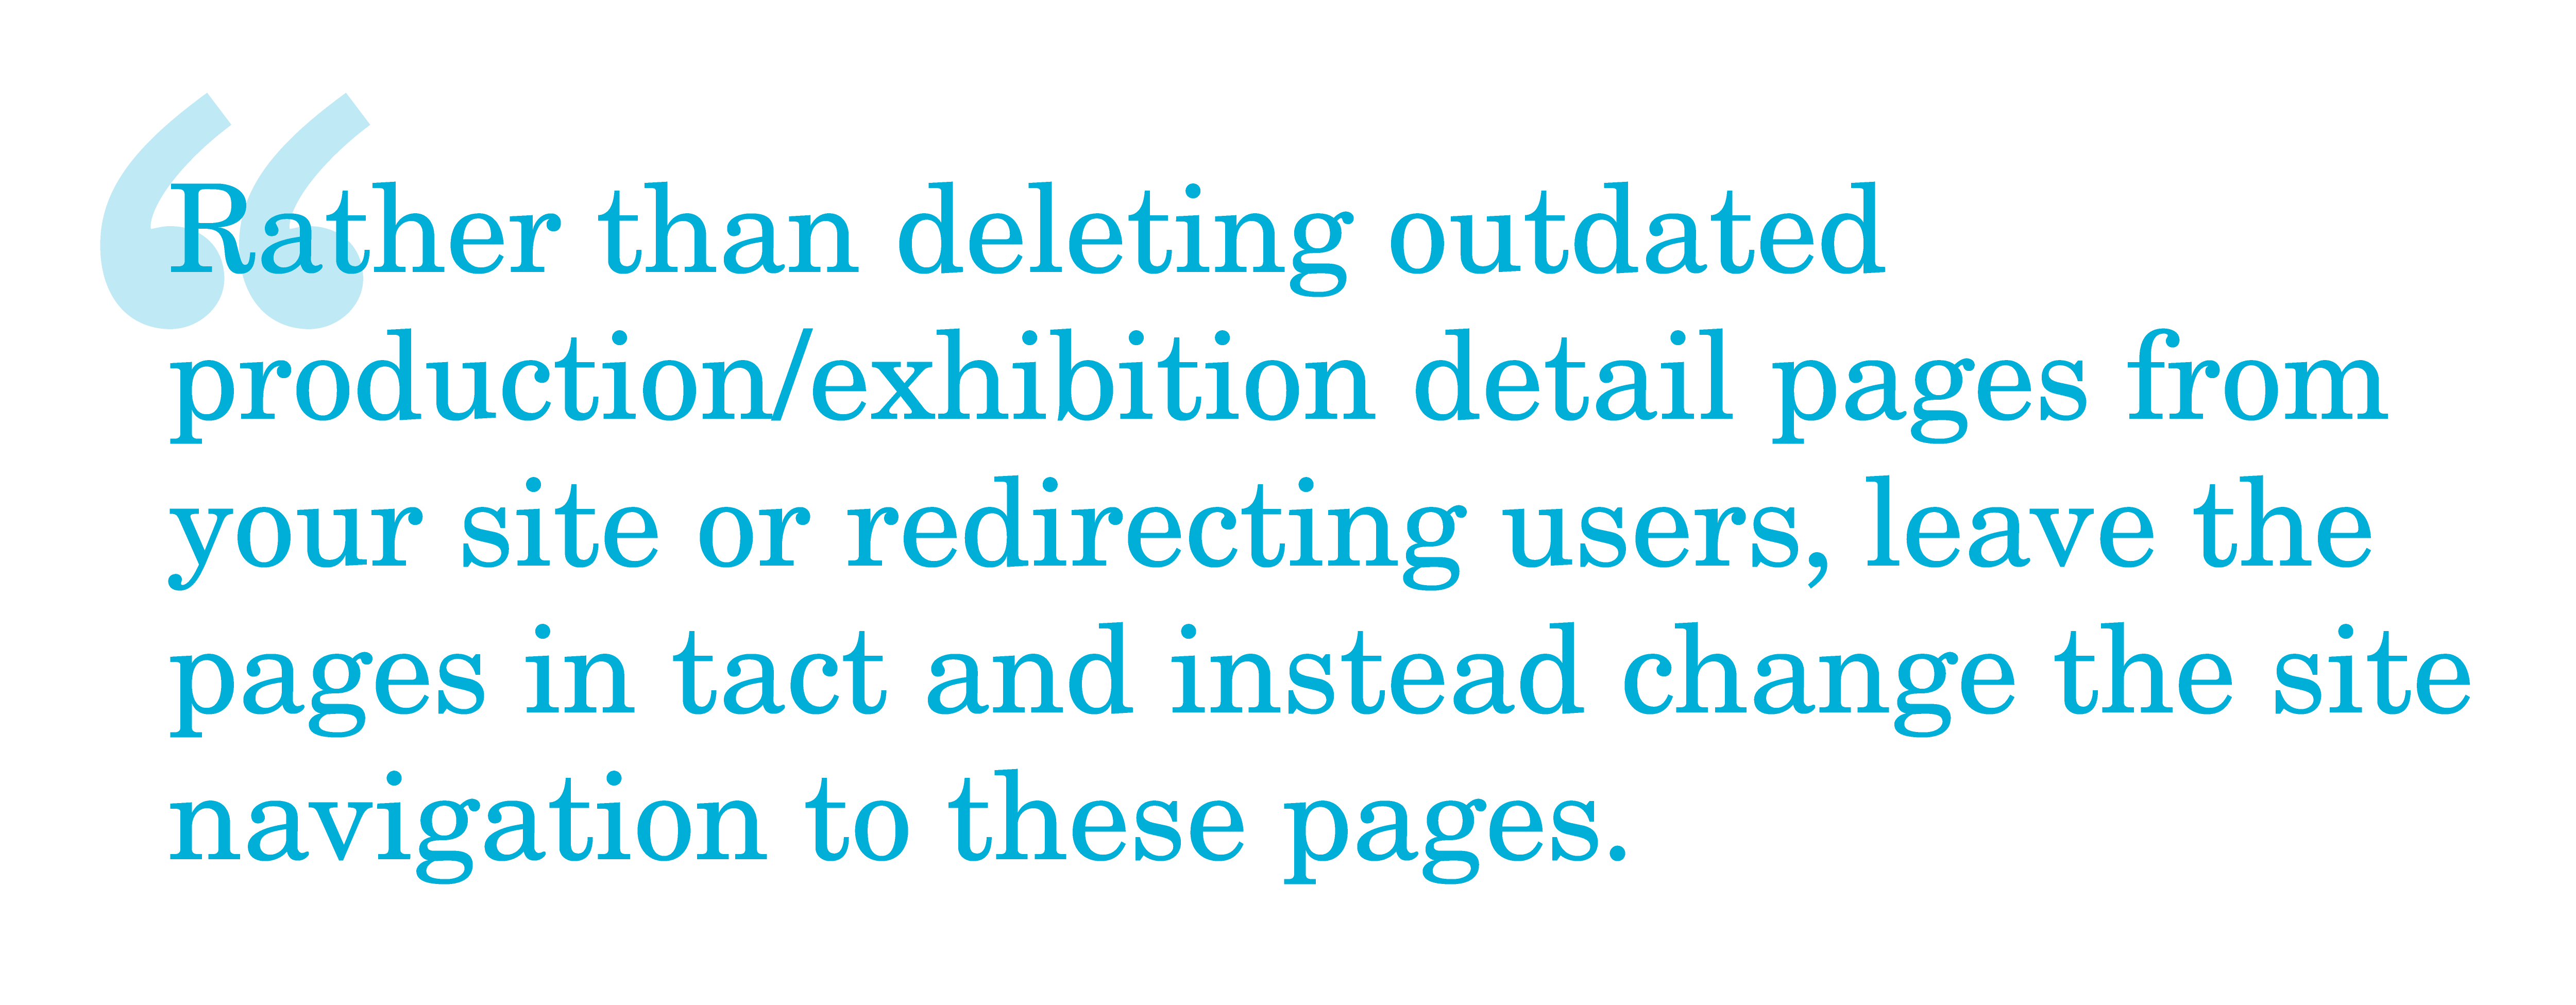 Blog 2017.04 Why You Shouldn't Delete Your Performance Pages-03.png